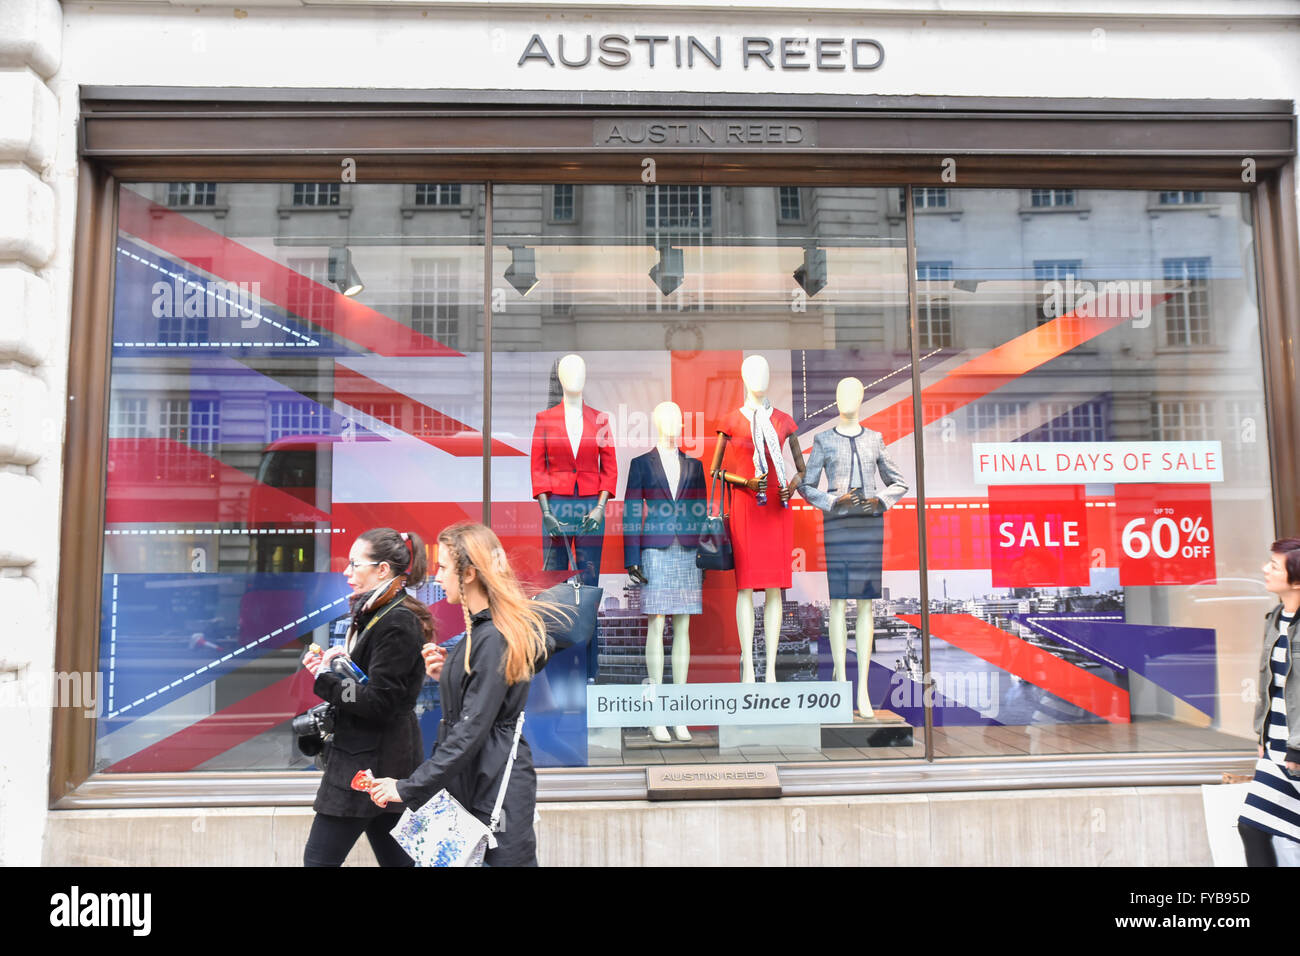 Austin Reed Shop High Resolution Stock Photography And Images Alamy